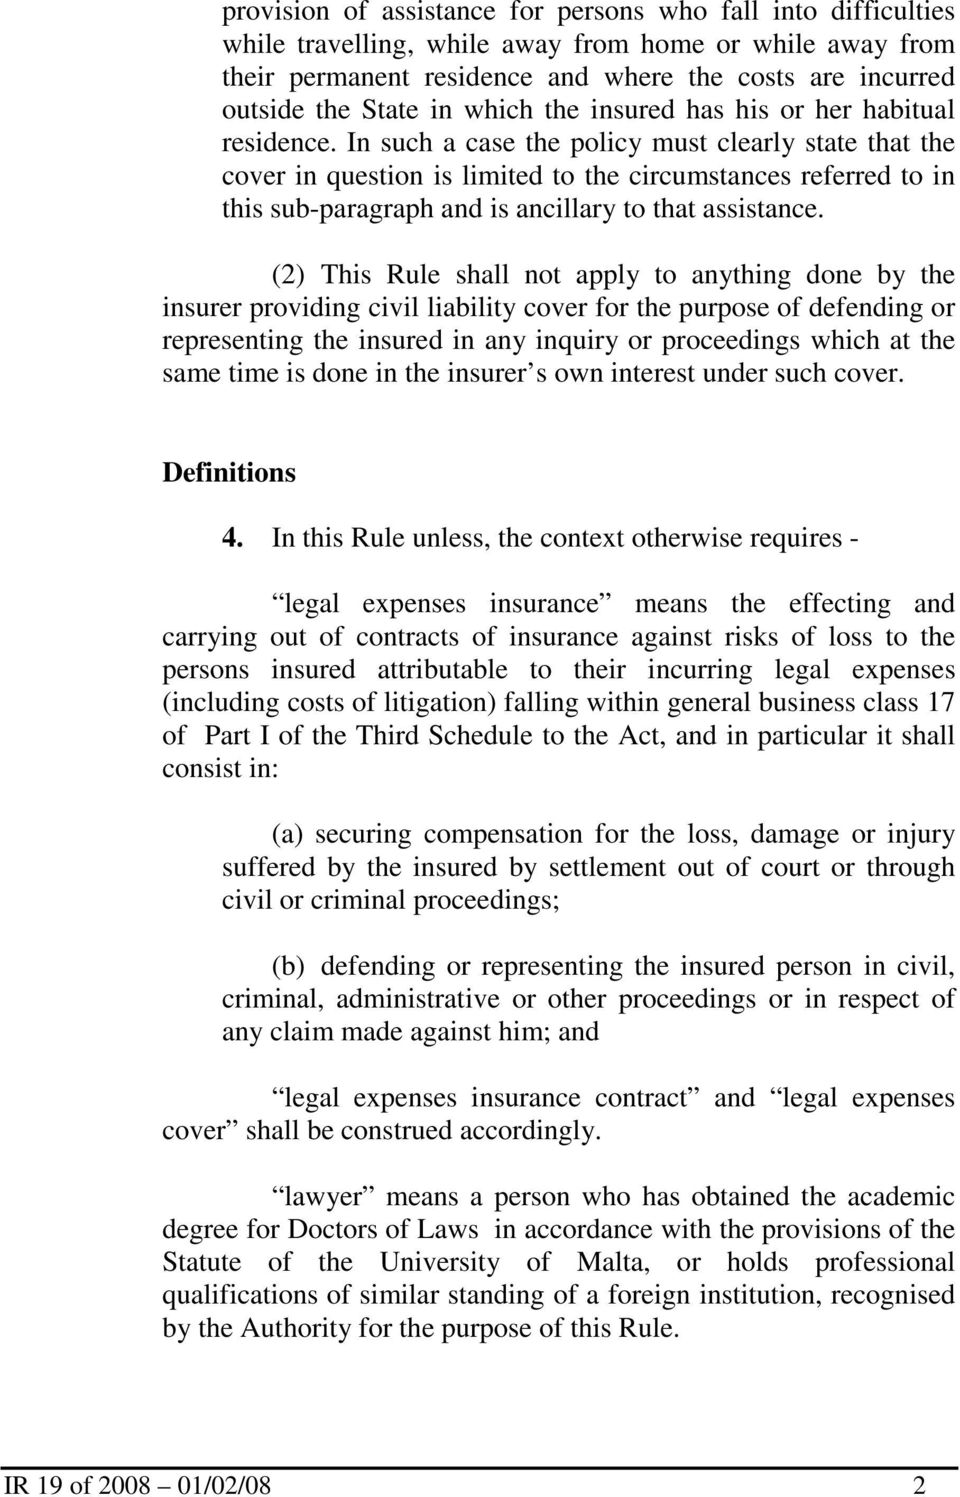 In such a case the policy must clearly state that the cover in question is limited to the circumstances referred to in this sub-paragraph and is ancillary to that assistance.